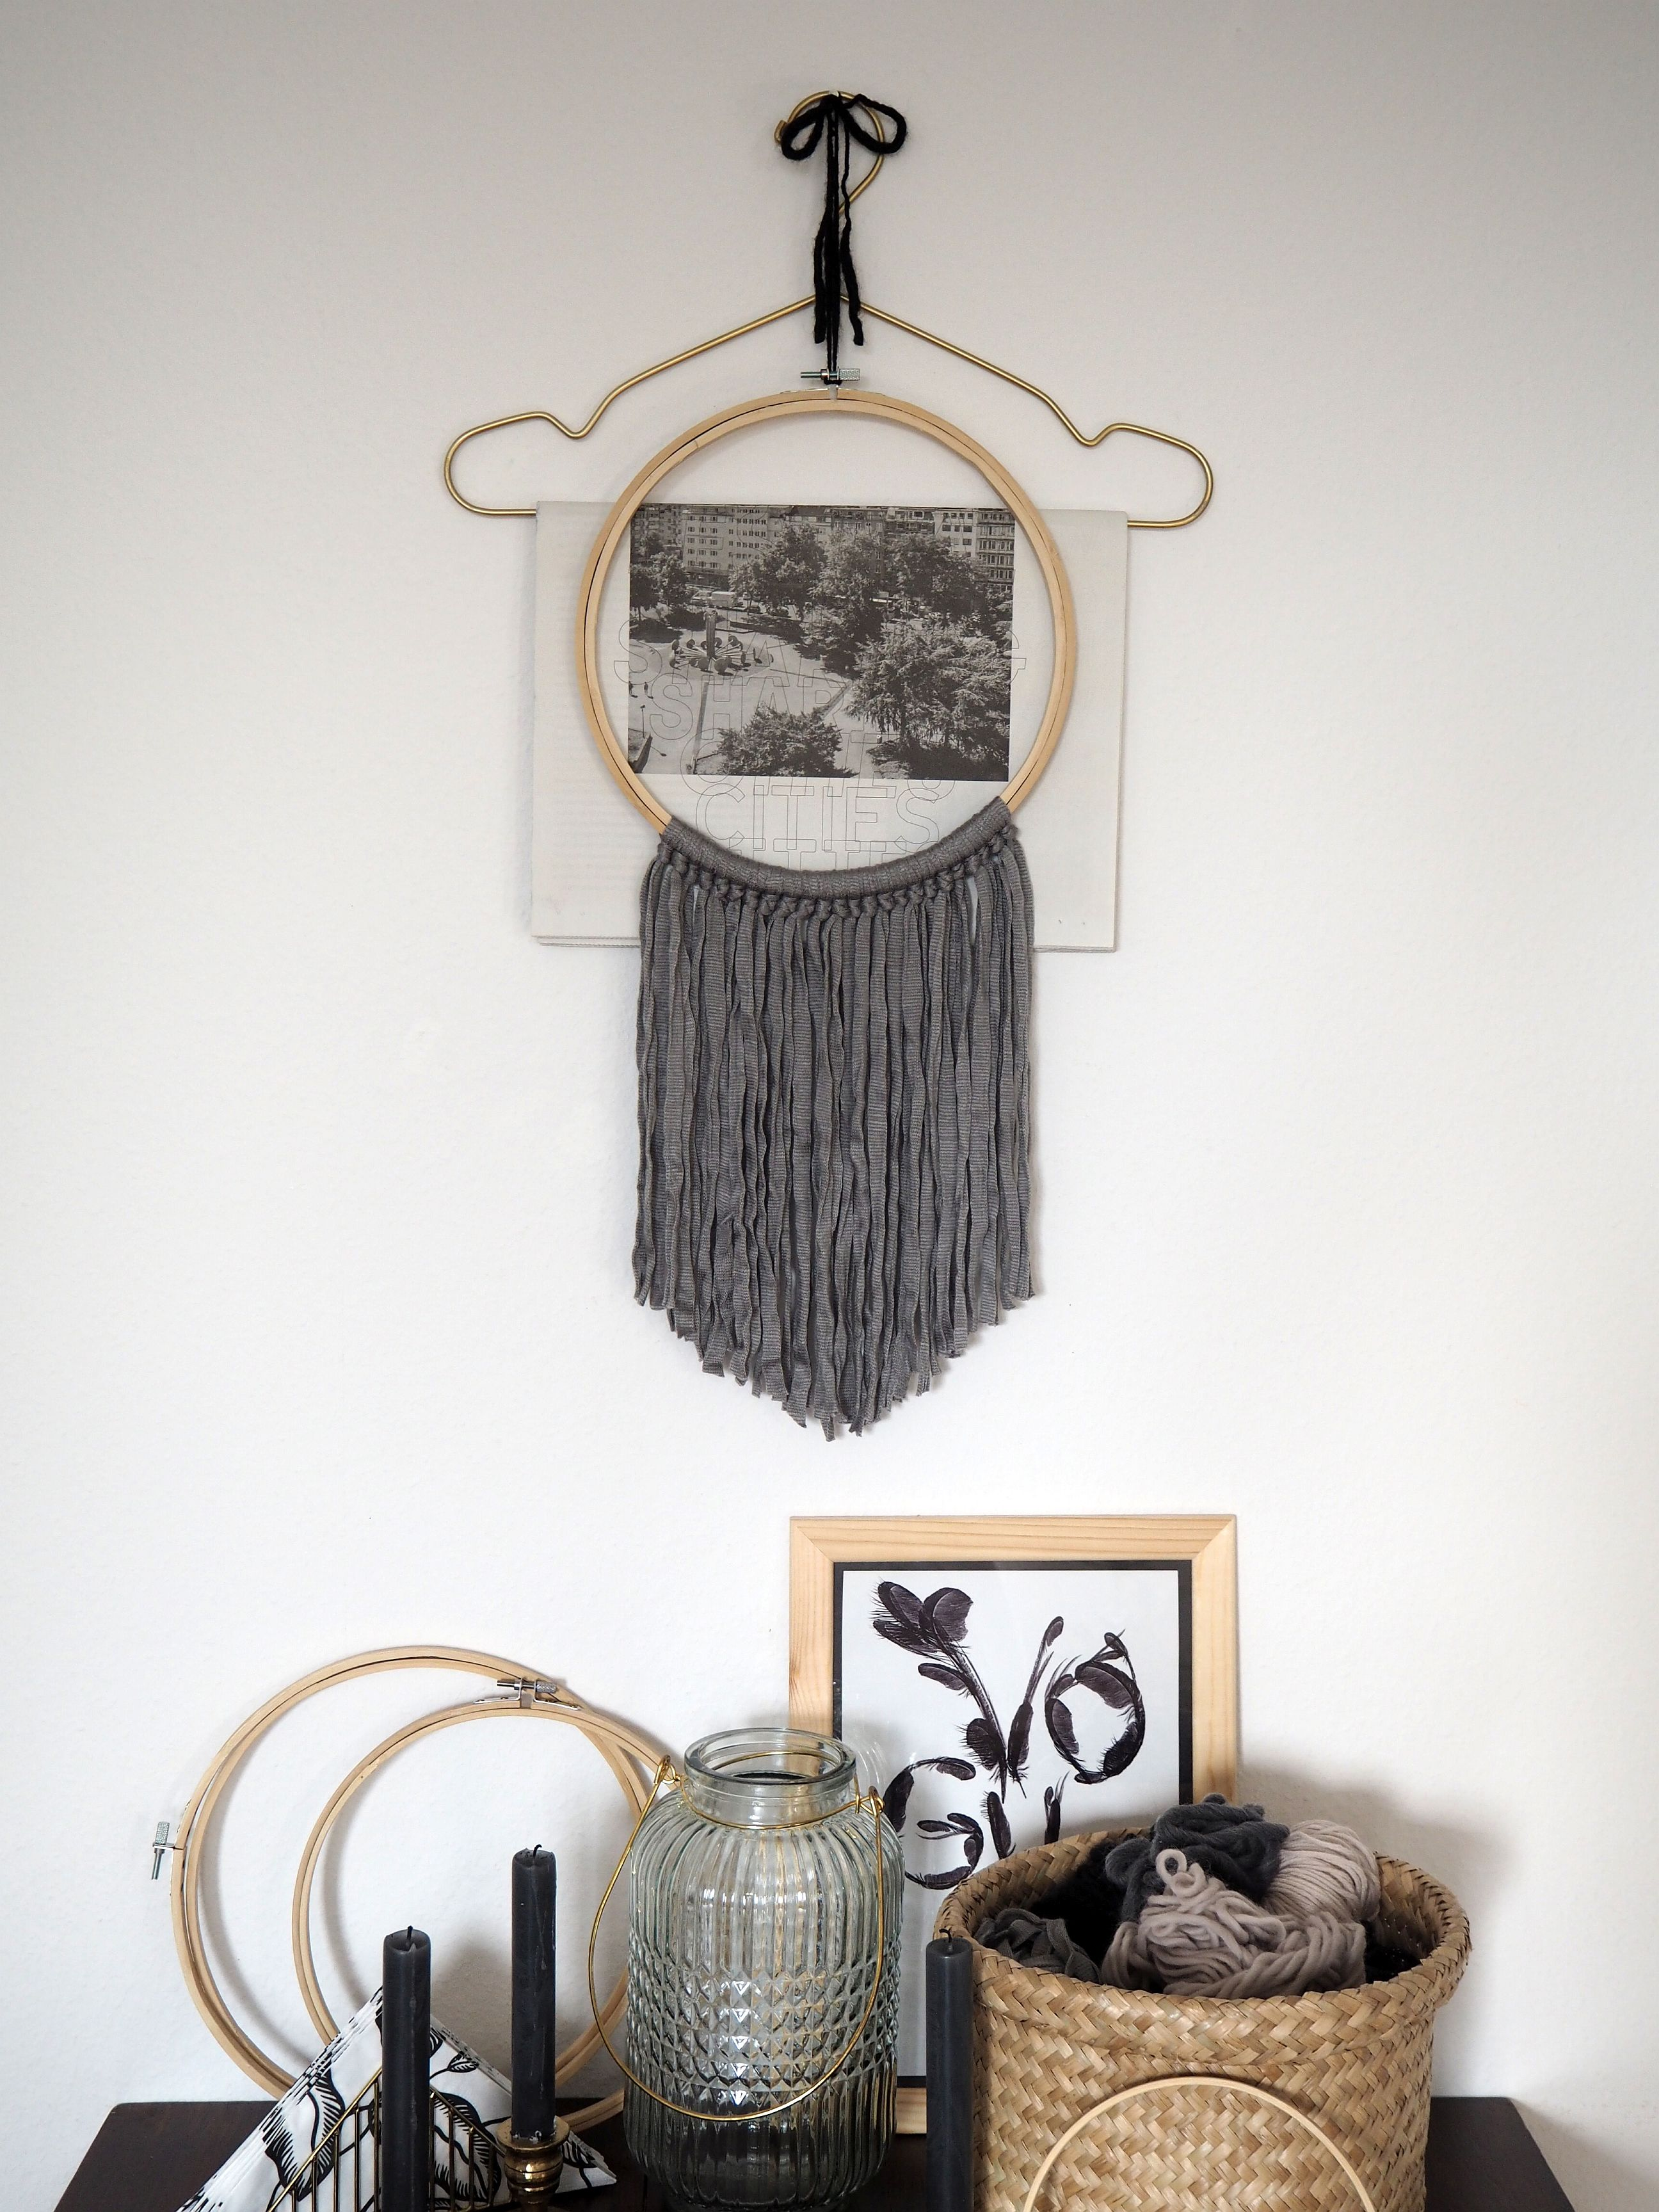 diy simples wand deko objekt im skandi stil sk n och kreativ. Black Bedroom Furniture Sets. Home Design Ideas